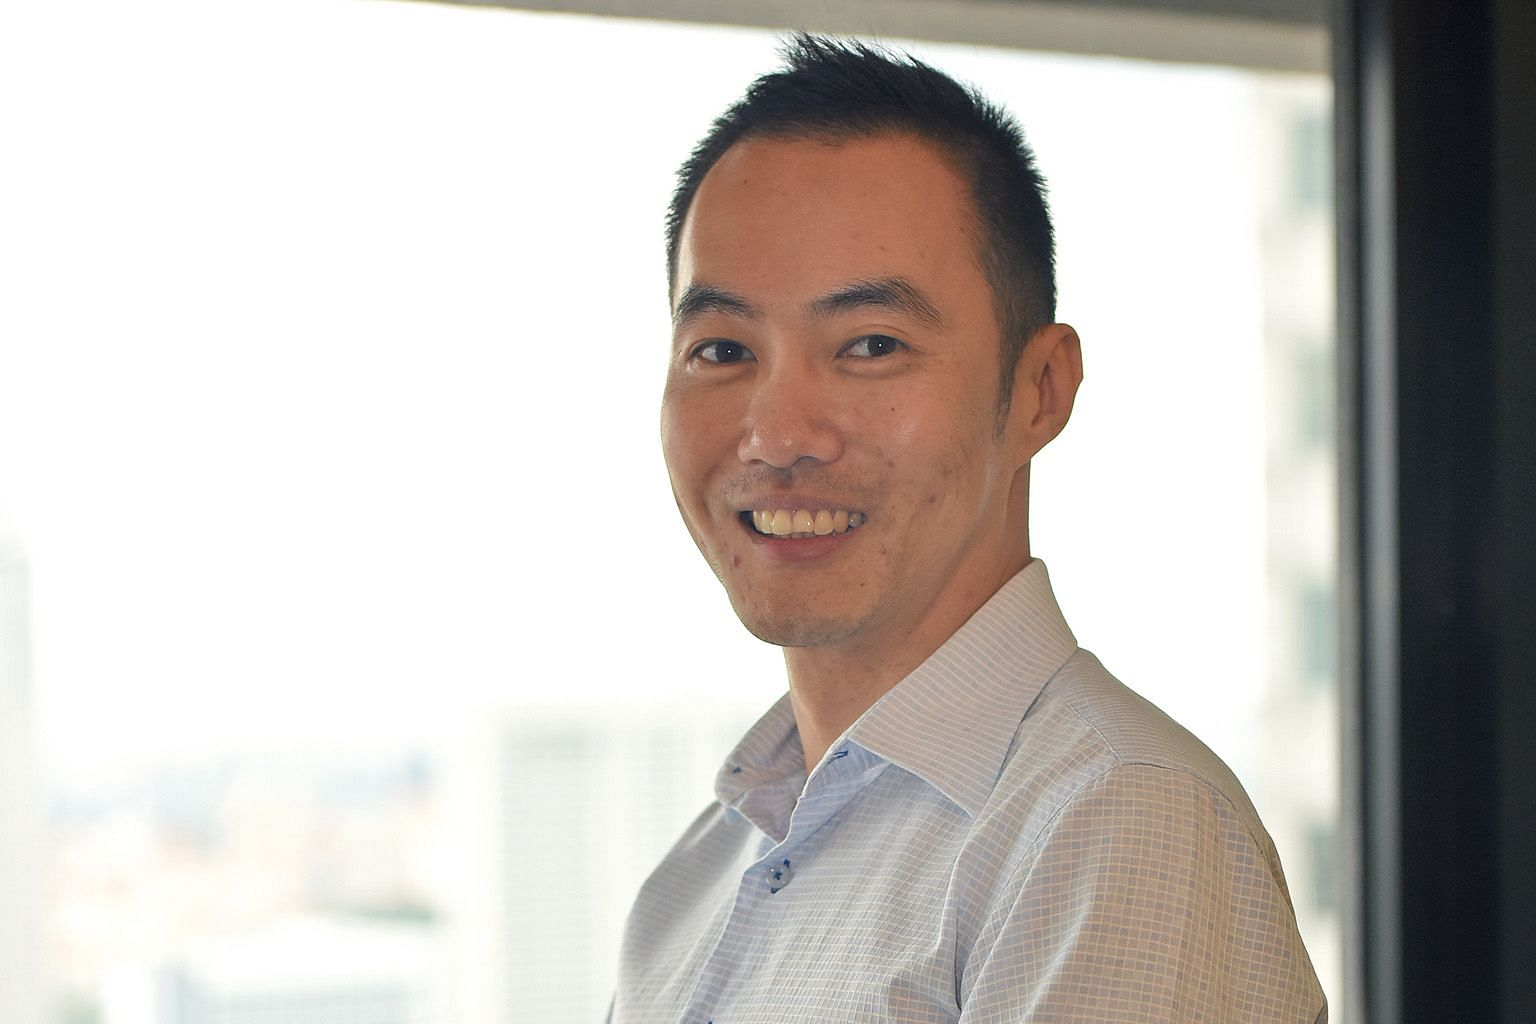 Mr Lester Chan set up investment and consulting firm BeaconRock Group - now known as BeaconRock Investments - in 2009. He is also an adjunct teaching faculty member at SMU's Lee Kong Chian School of Business, for the Master of Science in Innovation p